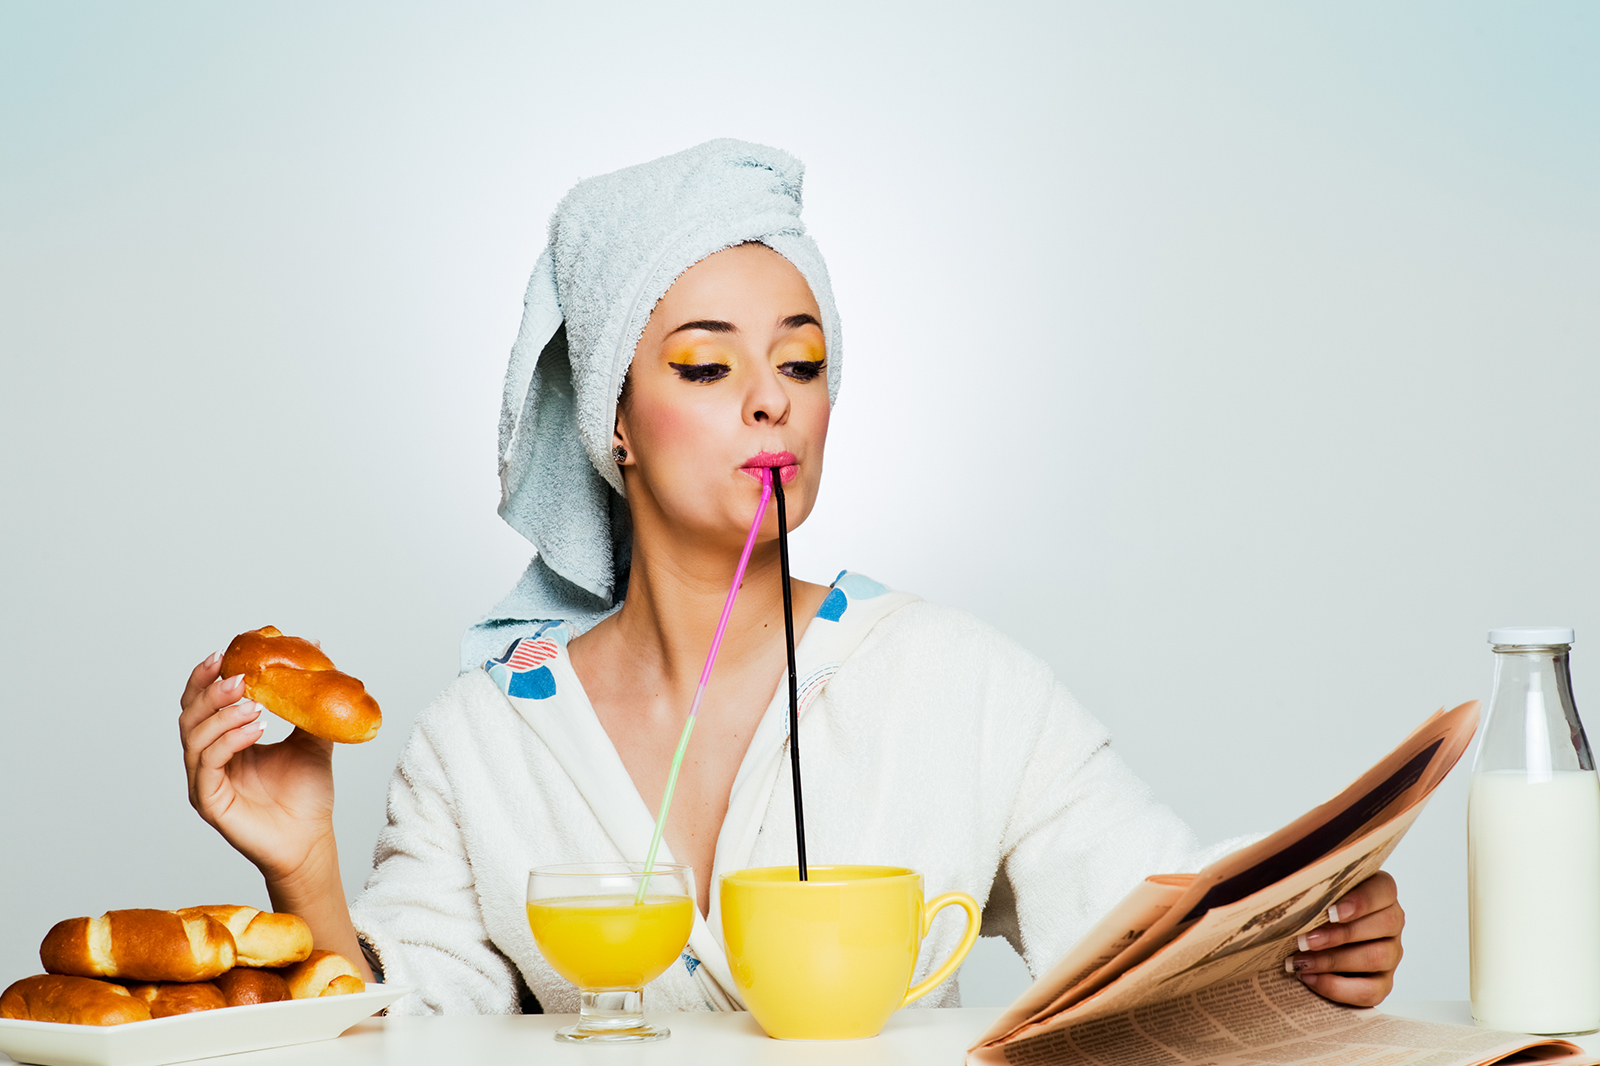 Food and Nutrition: The Truth Behind Food Headlines